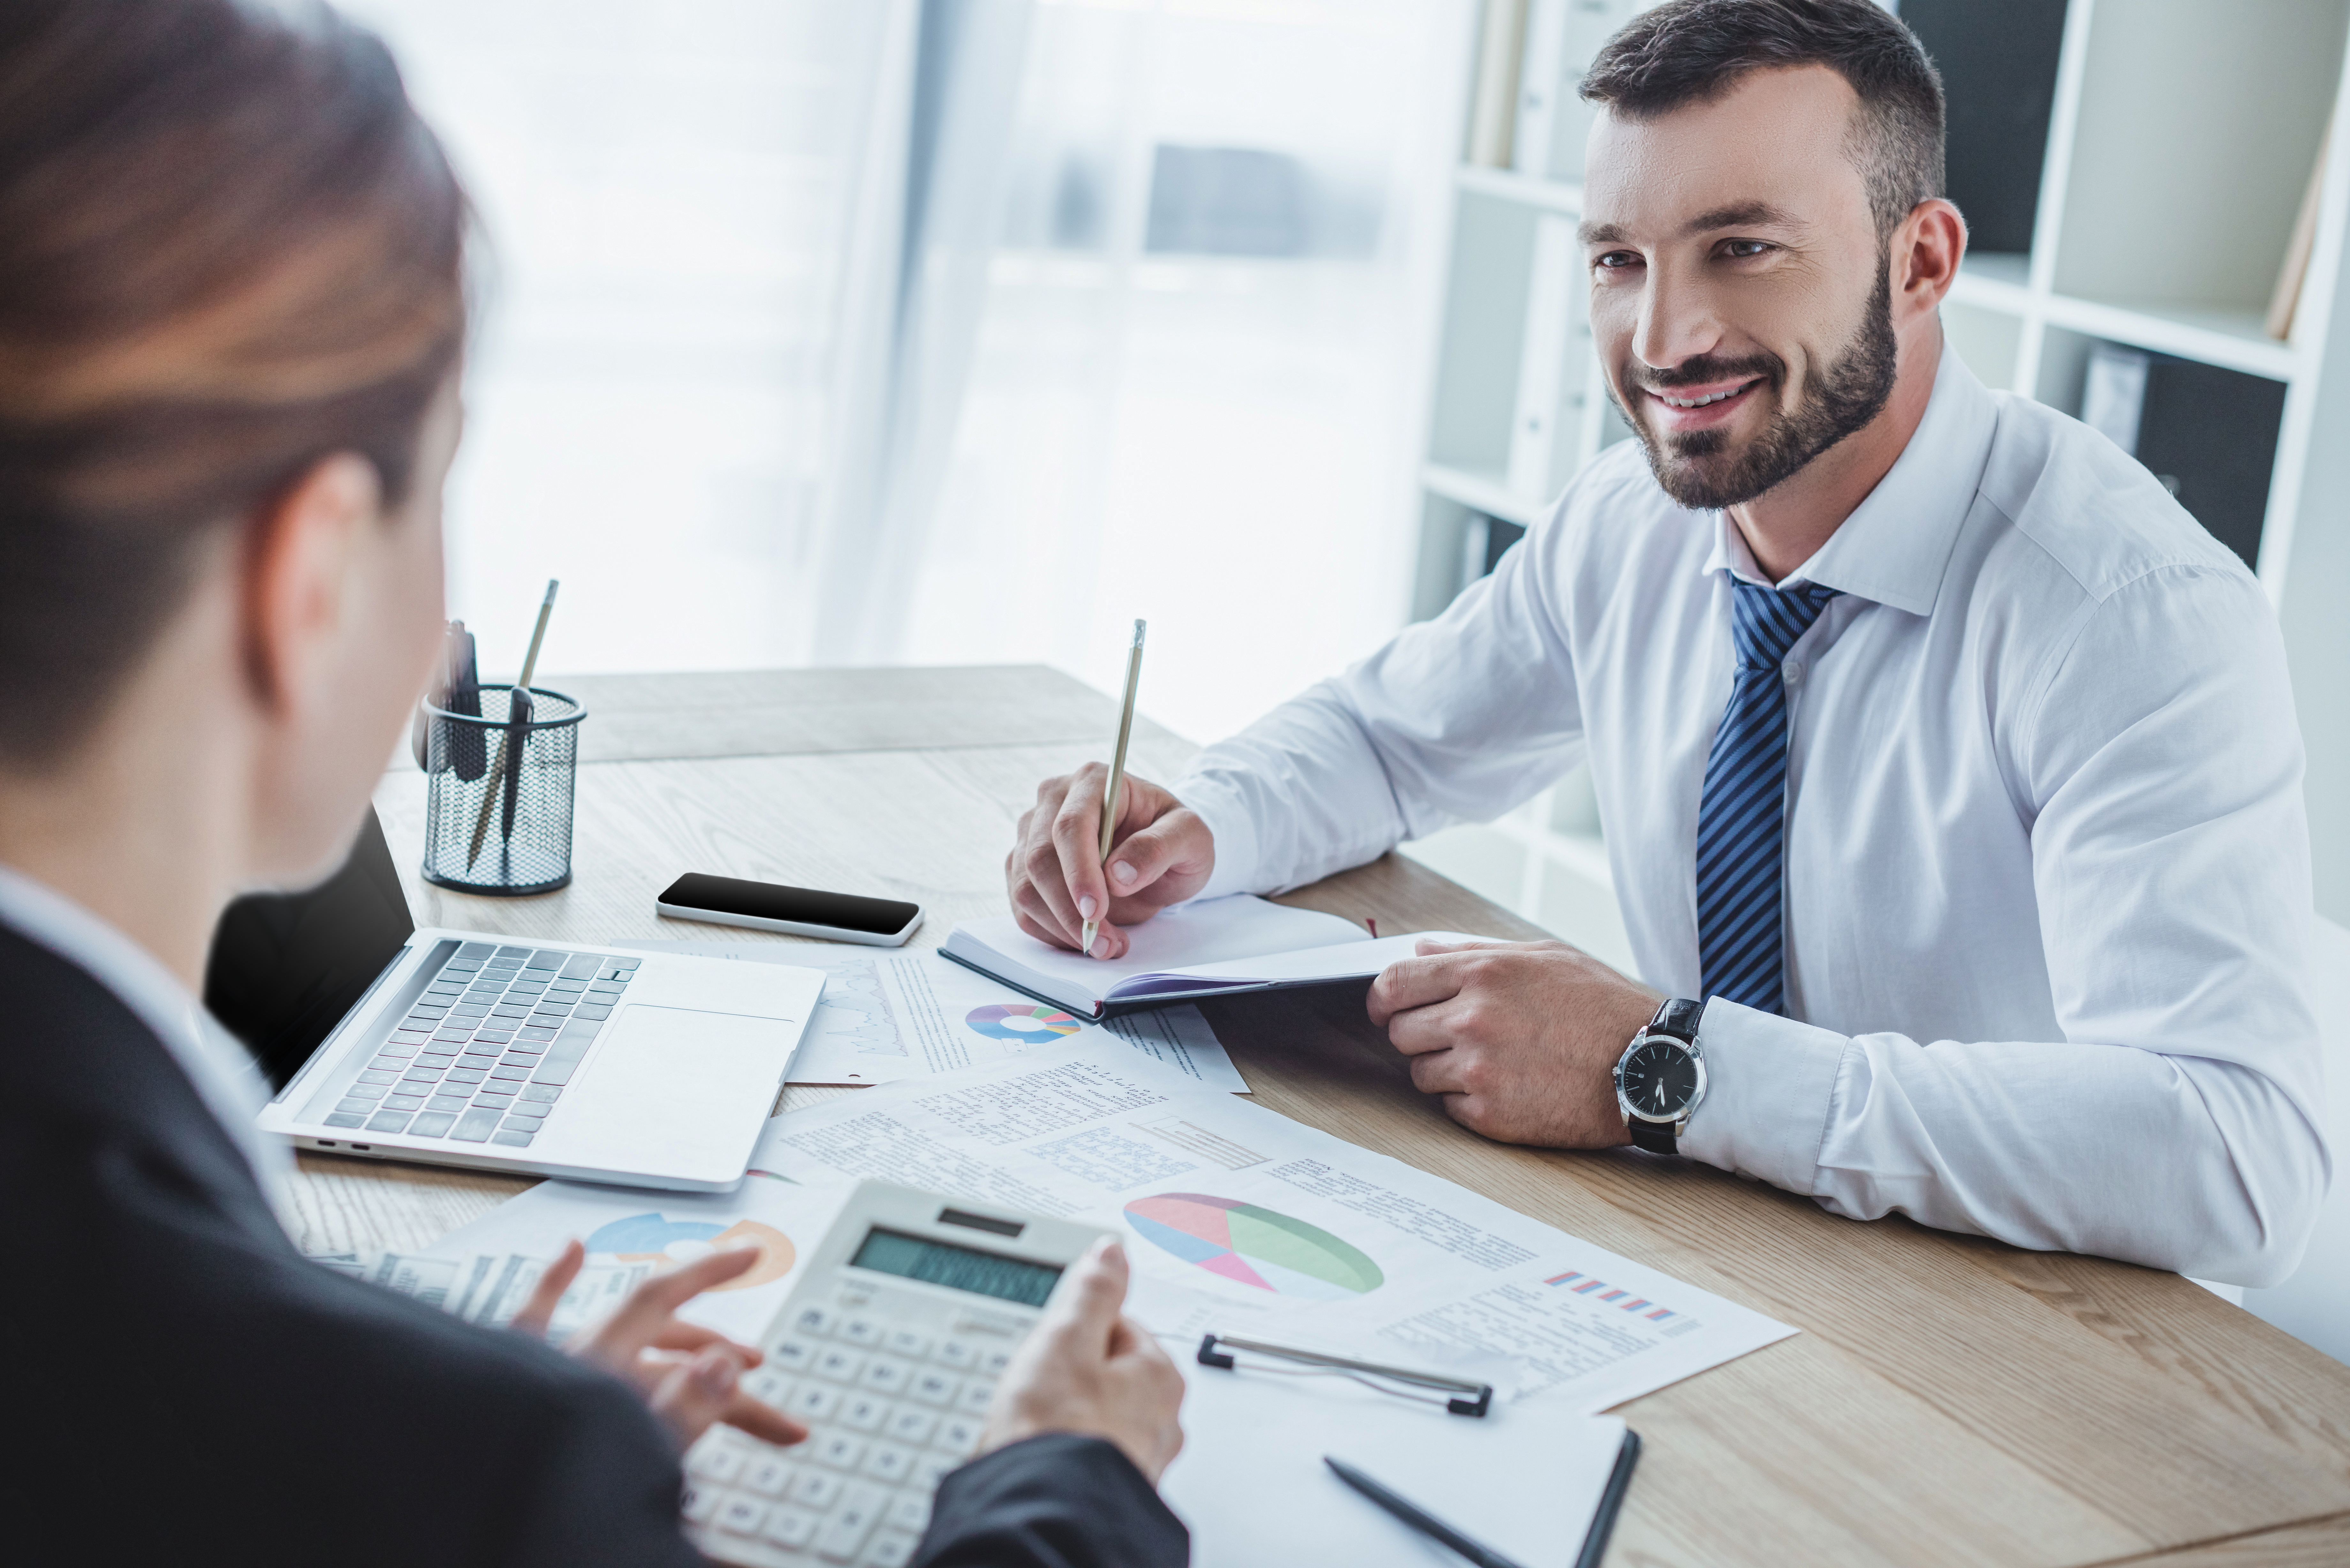 smiling financiers looking at each other during work in office